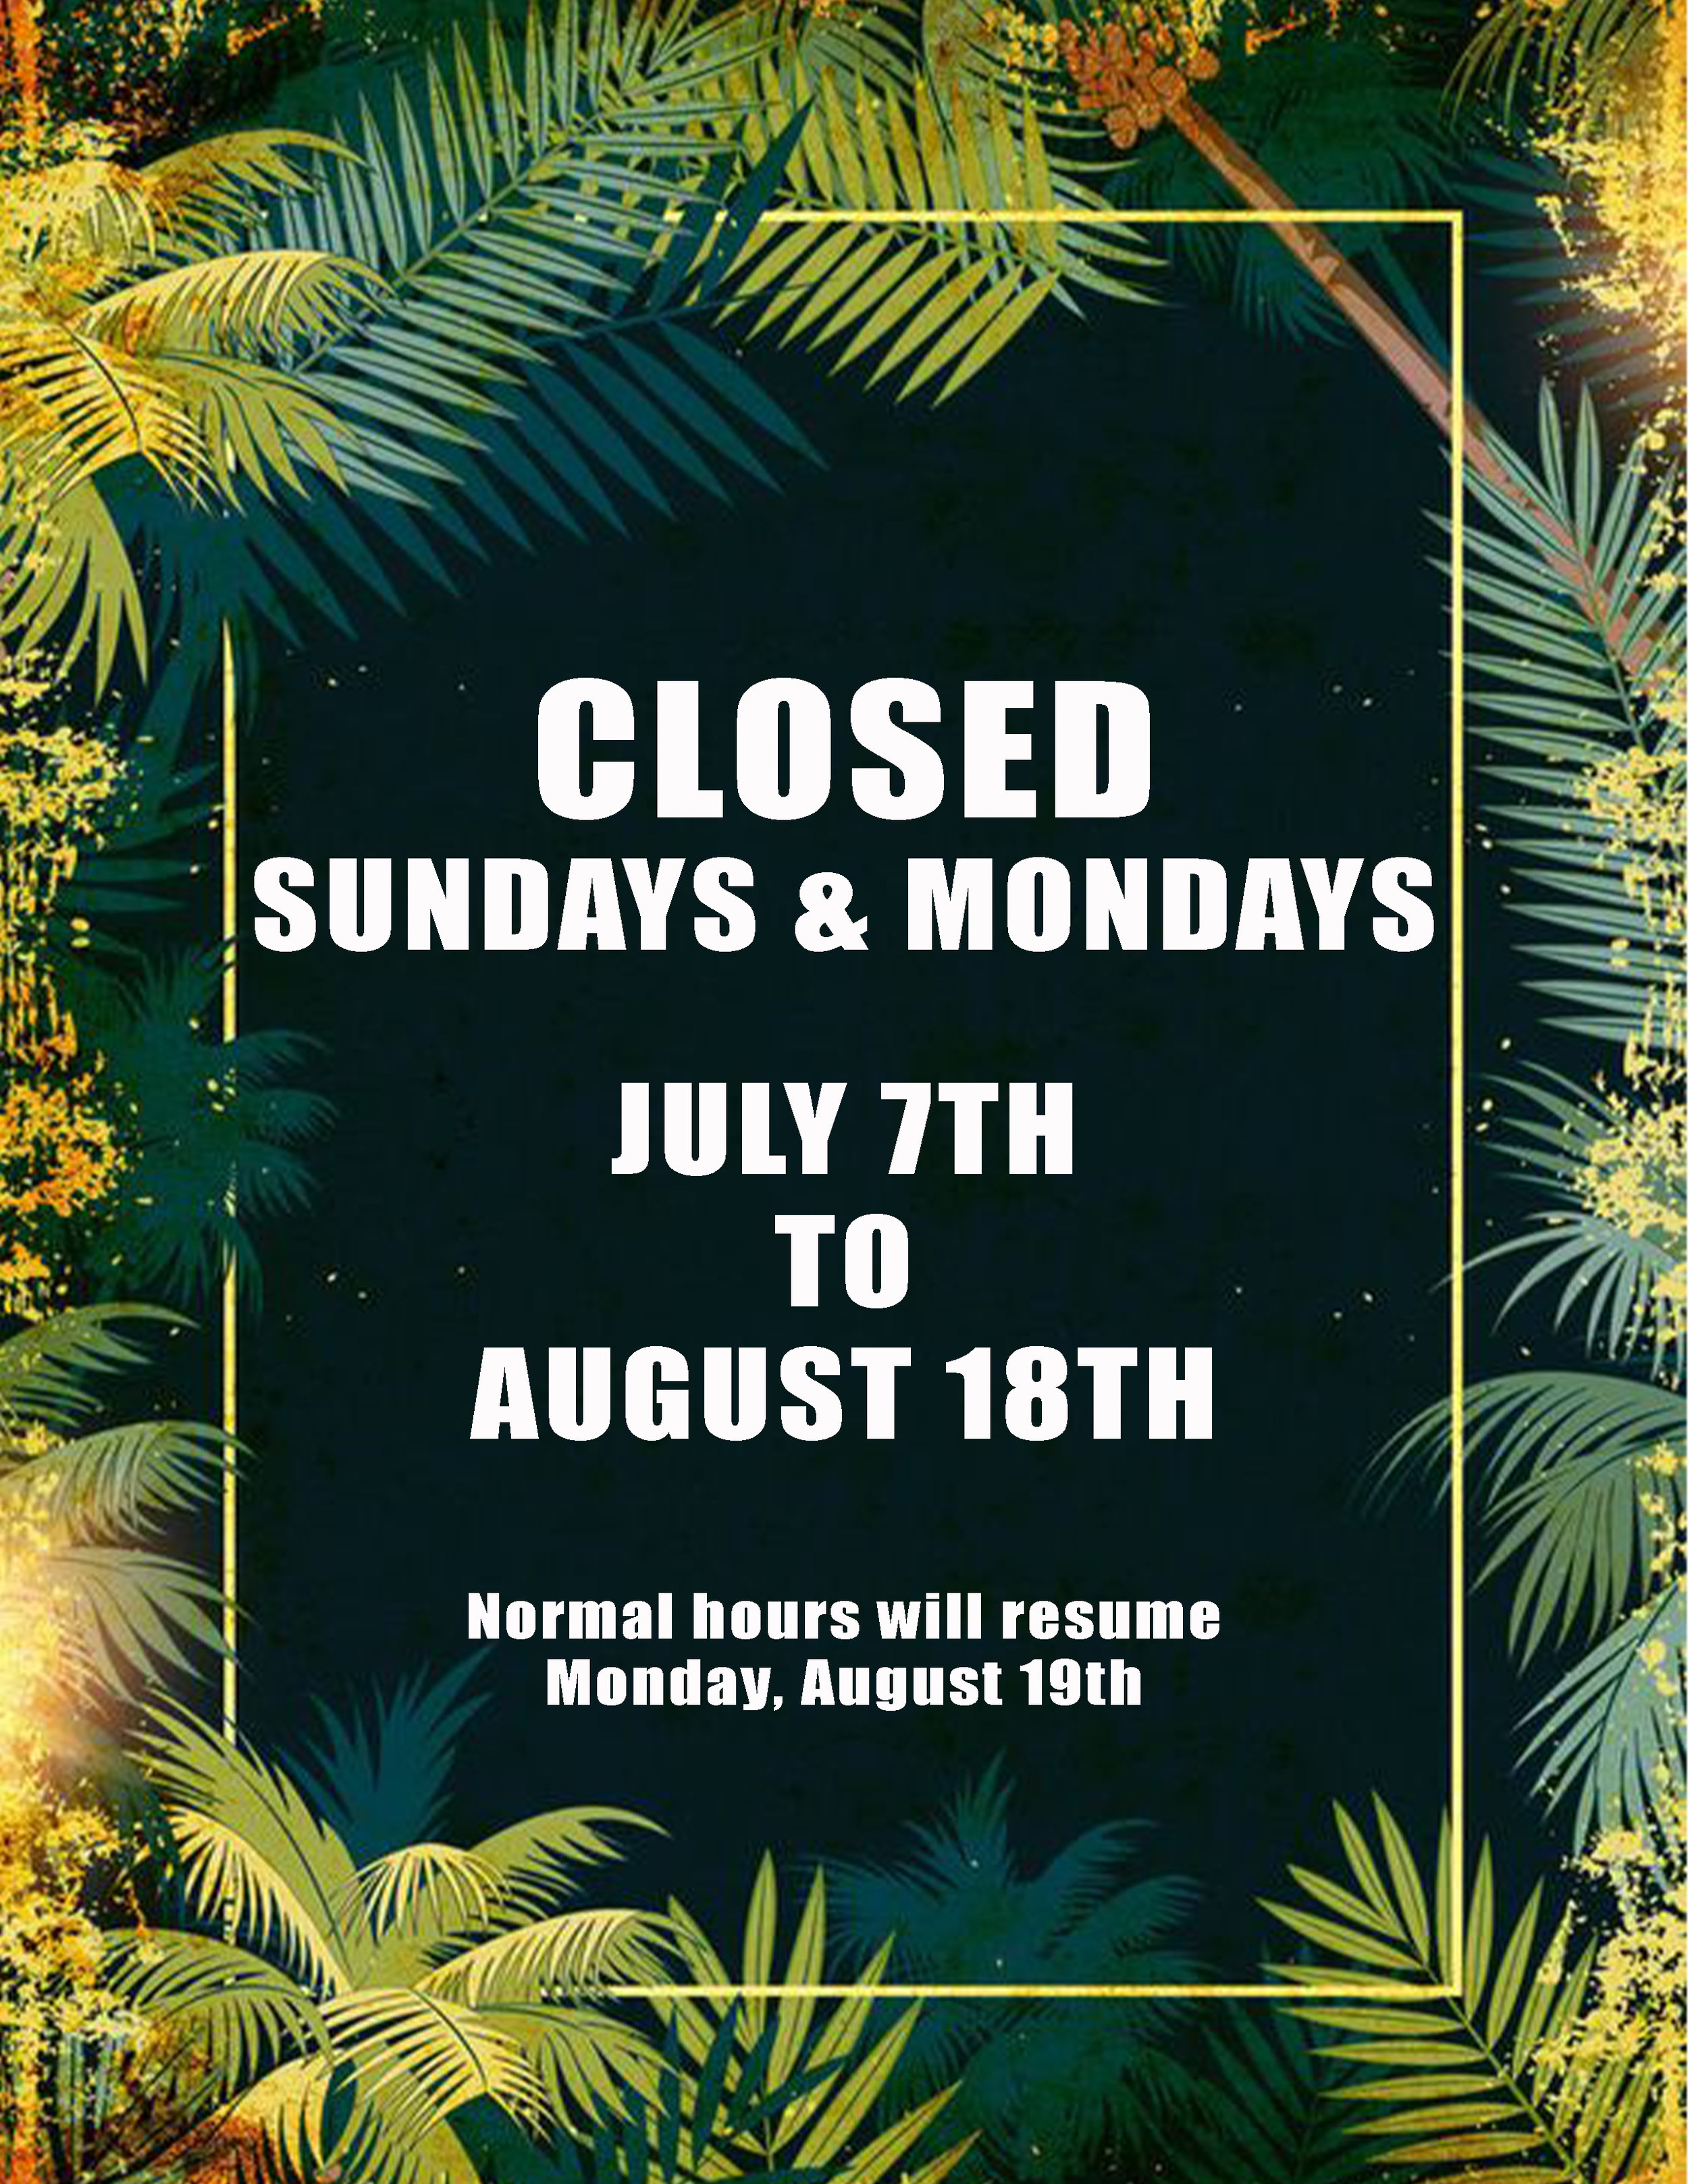 CLOSED - We will be closed Sundays & Mondays during this time to give our stylists a relaxing summer. All stylists (excluding Julio & Christine) will be working Tuesday thru Saturday.